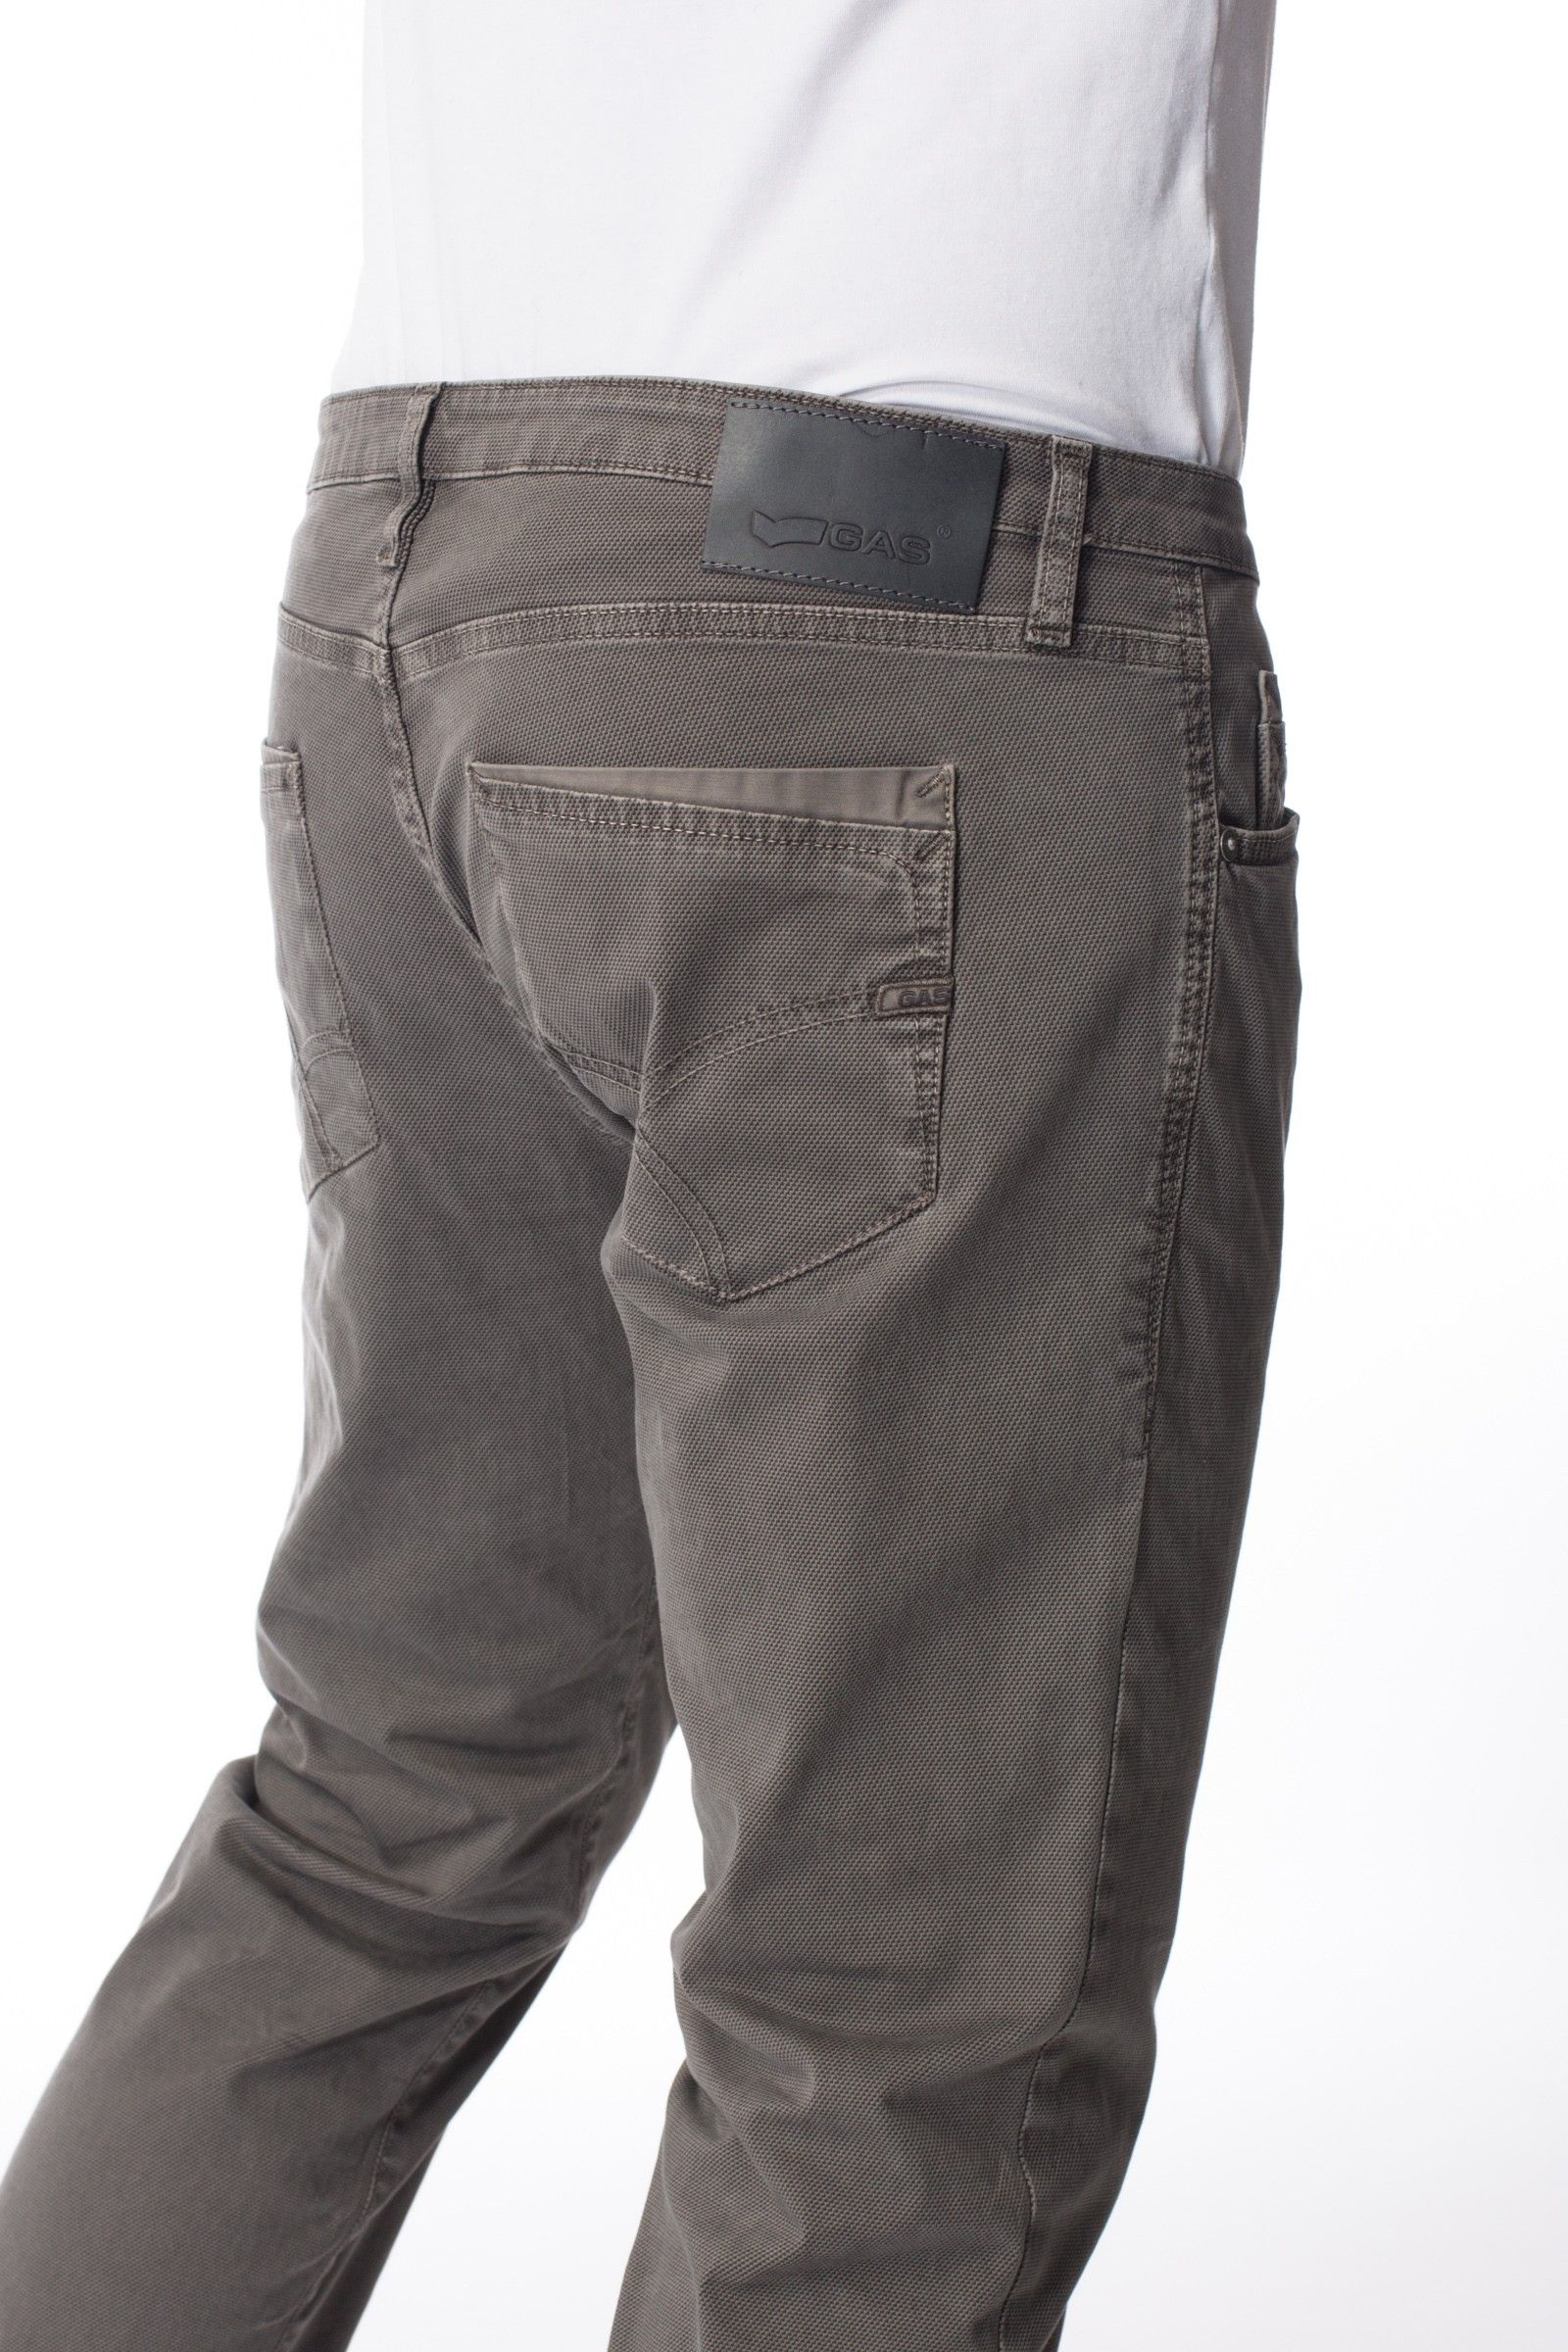 MITCH - pantalones   chinos - ropa - hombre - Gas Jeans online store ... 10c2727f6173